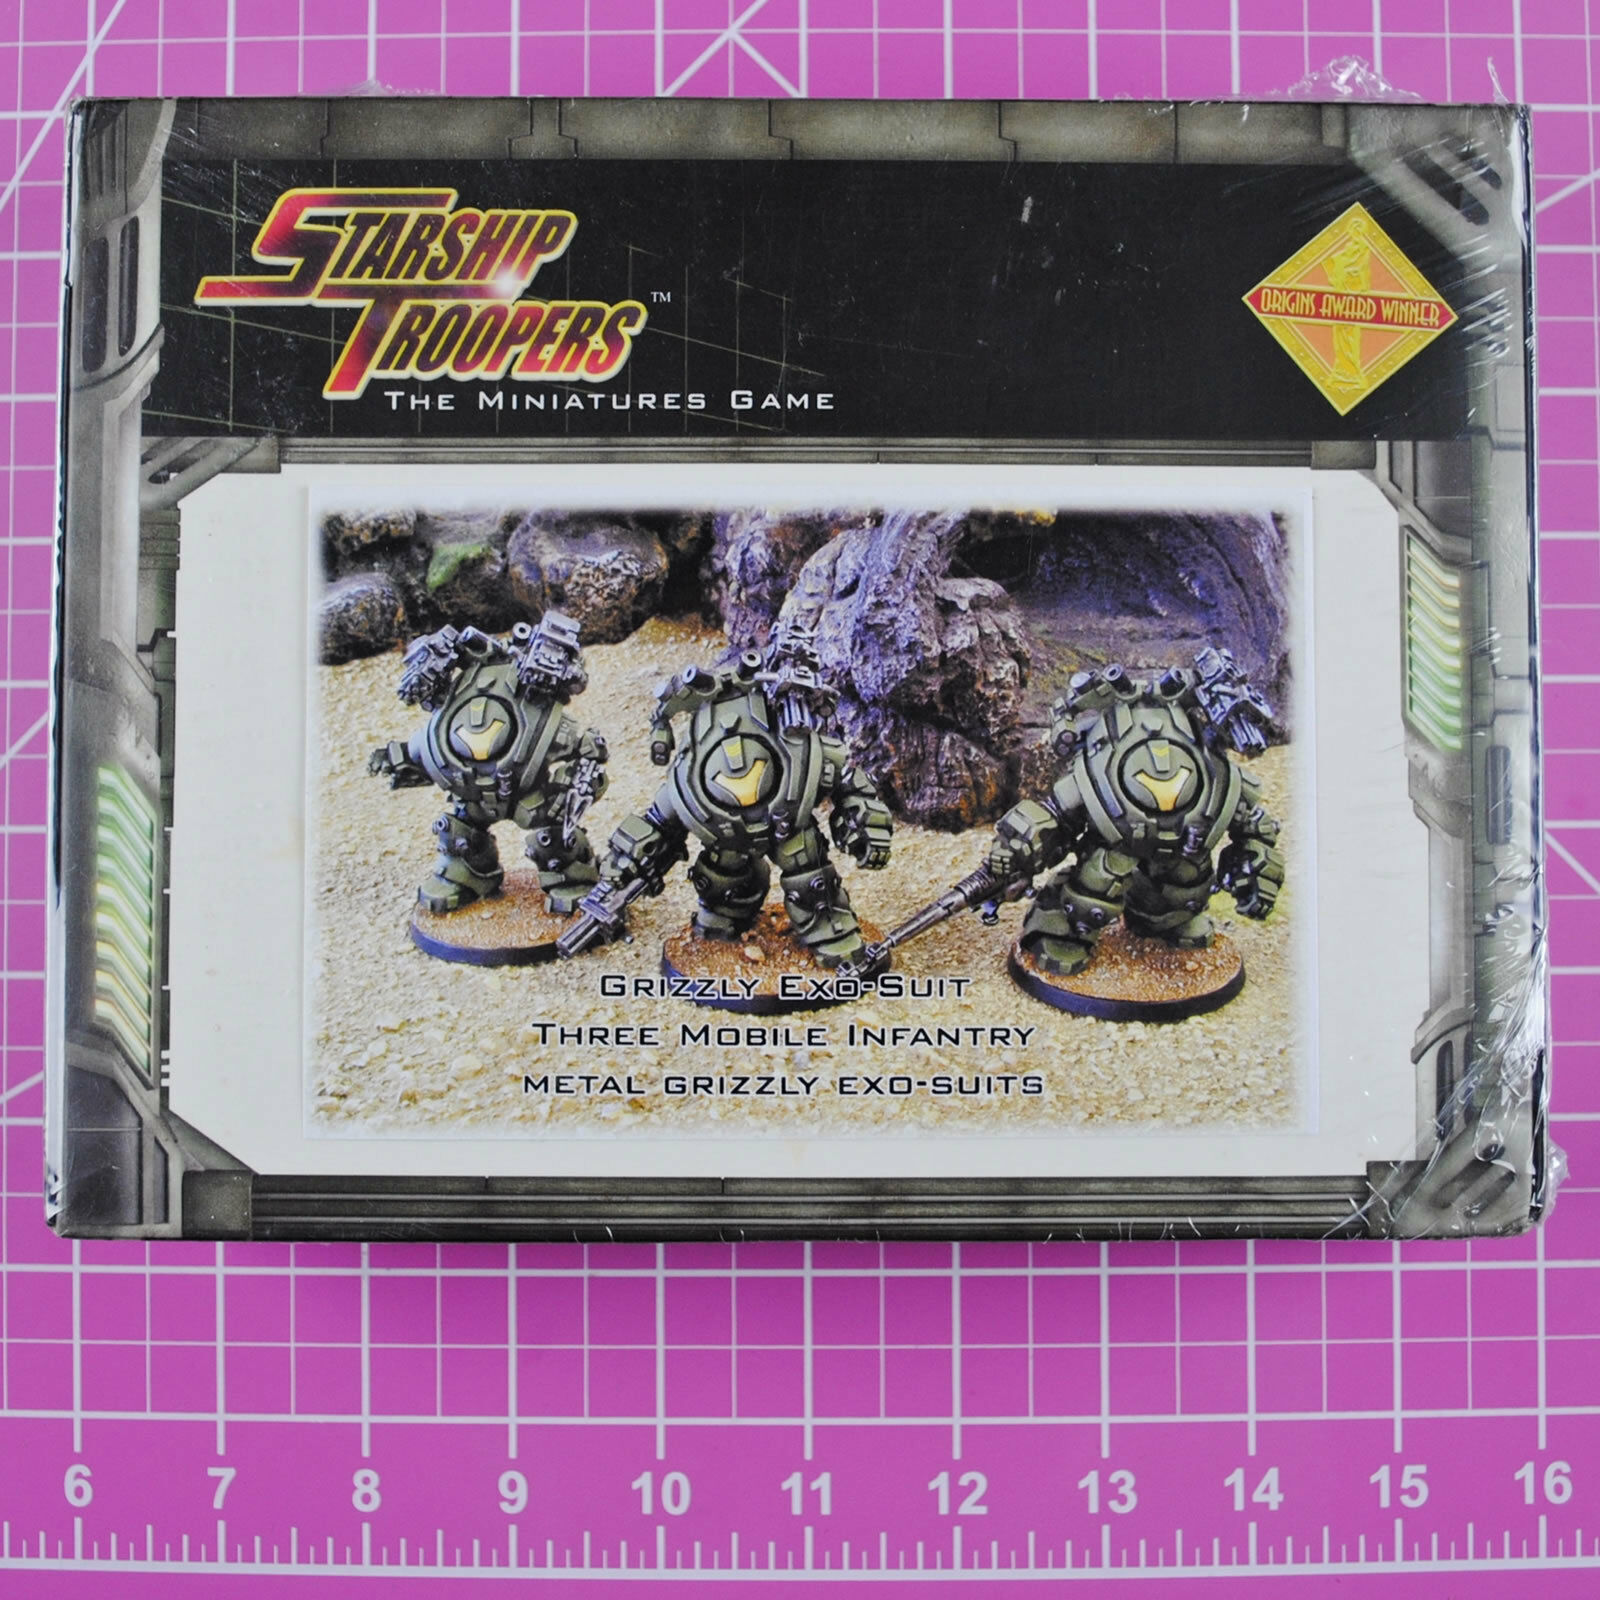 Starship troopers grizzly exo - anzug - truppe, die mobile infanterie nib mungo selten -